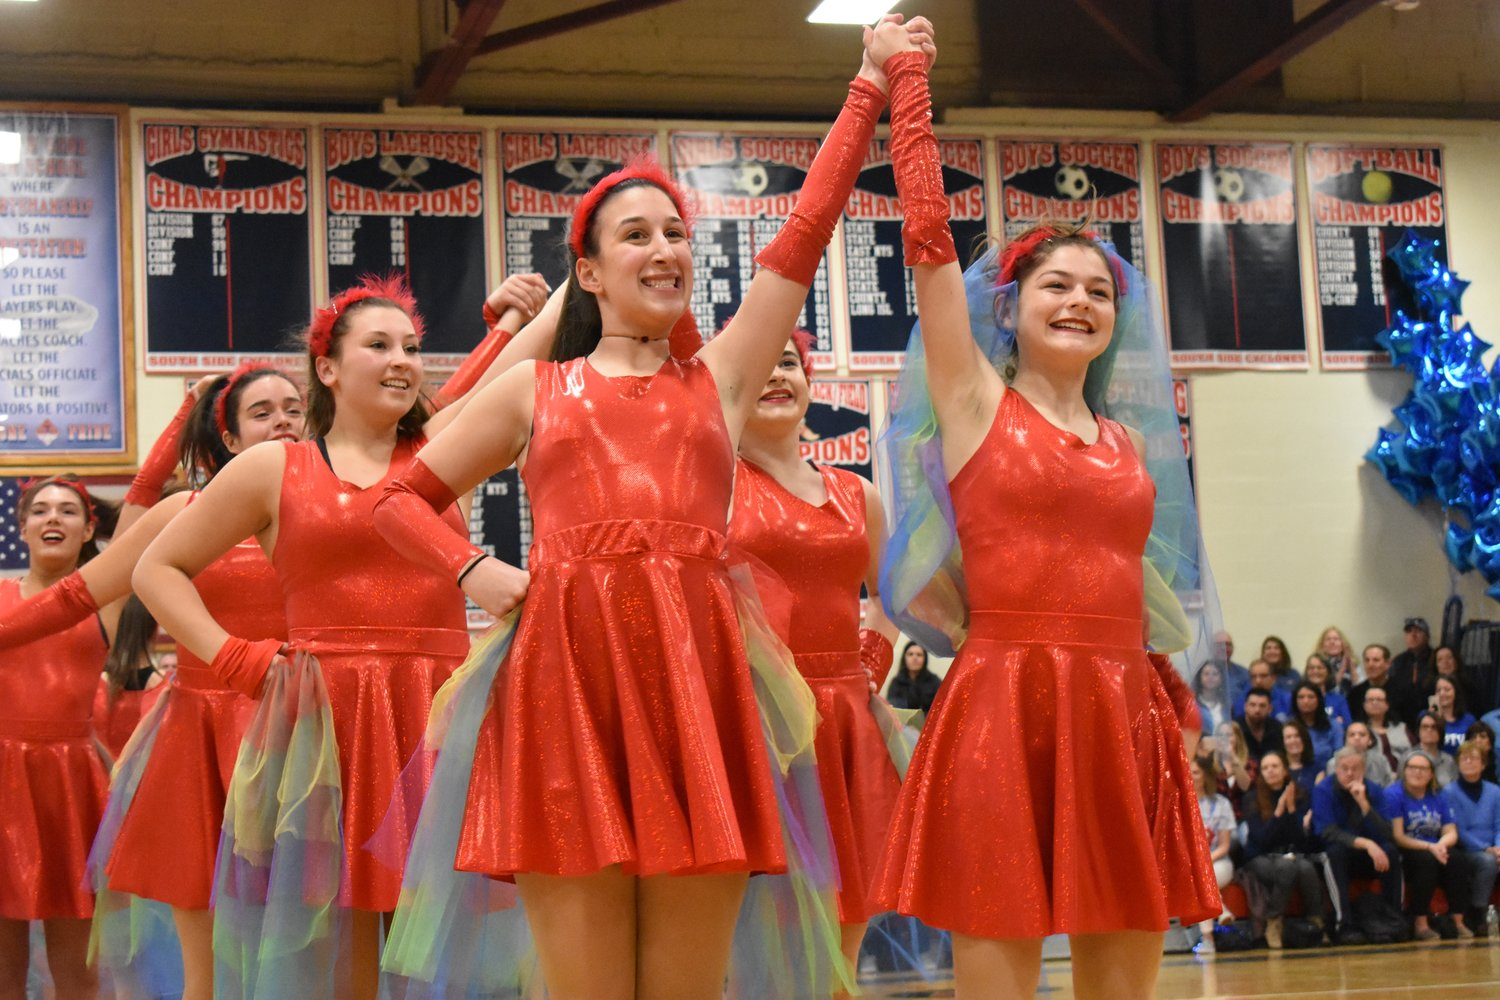 Tap dancers wowed the crowd.